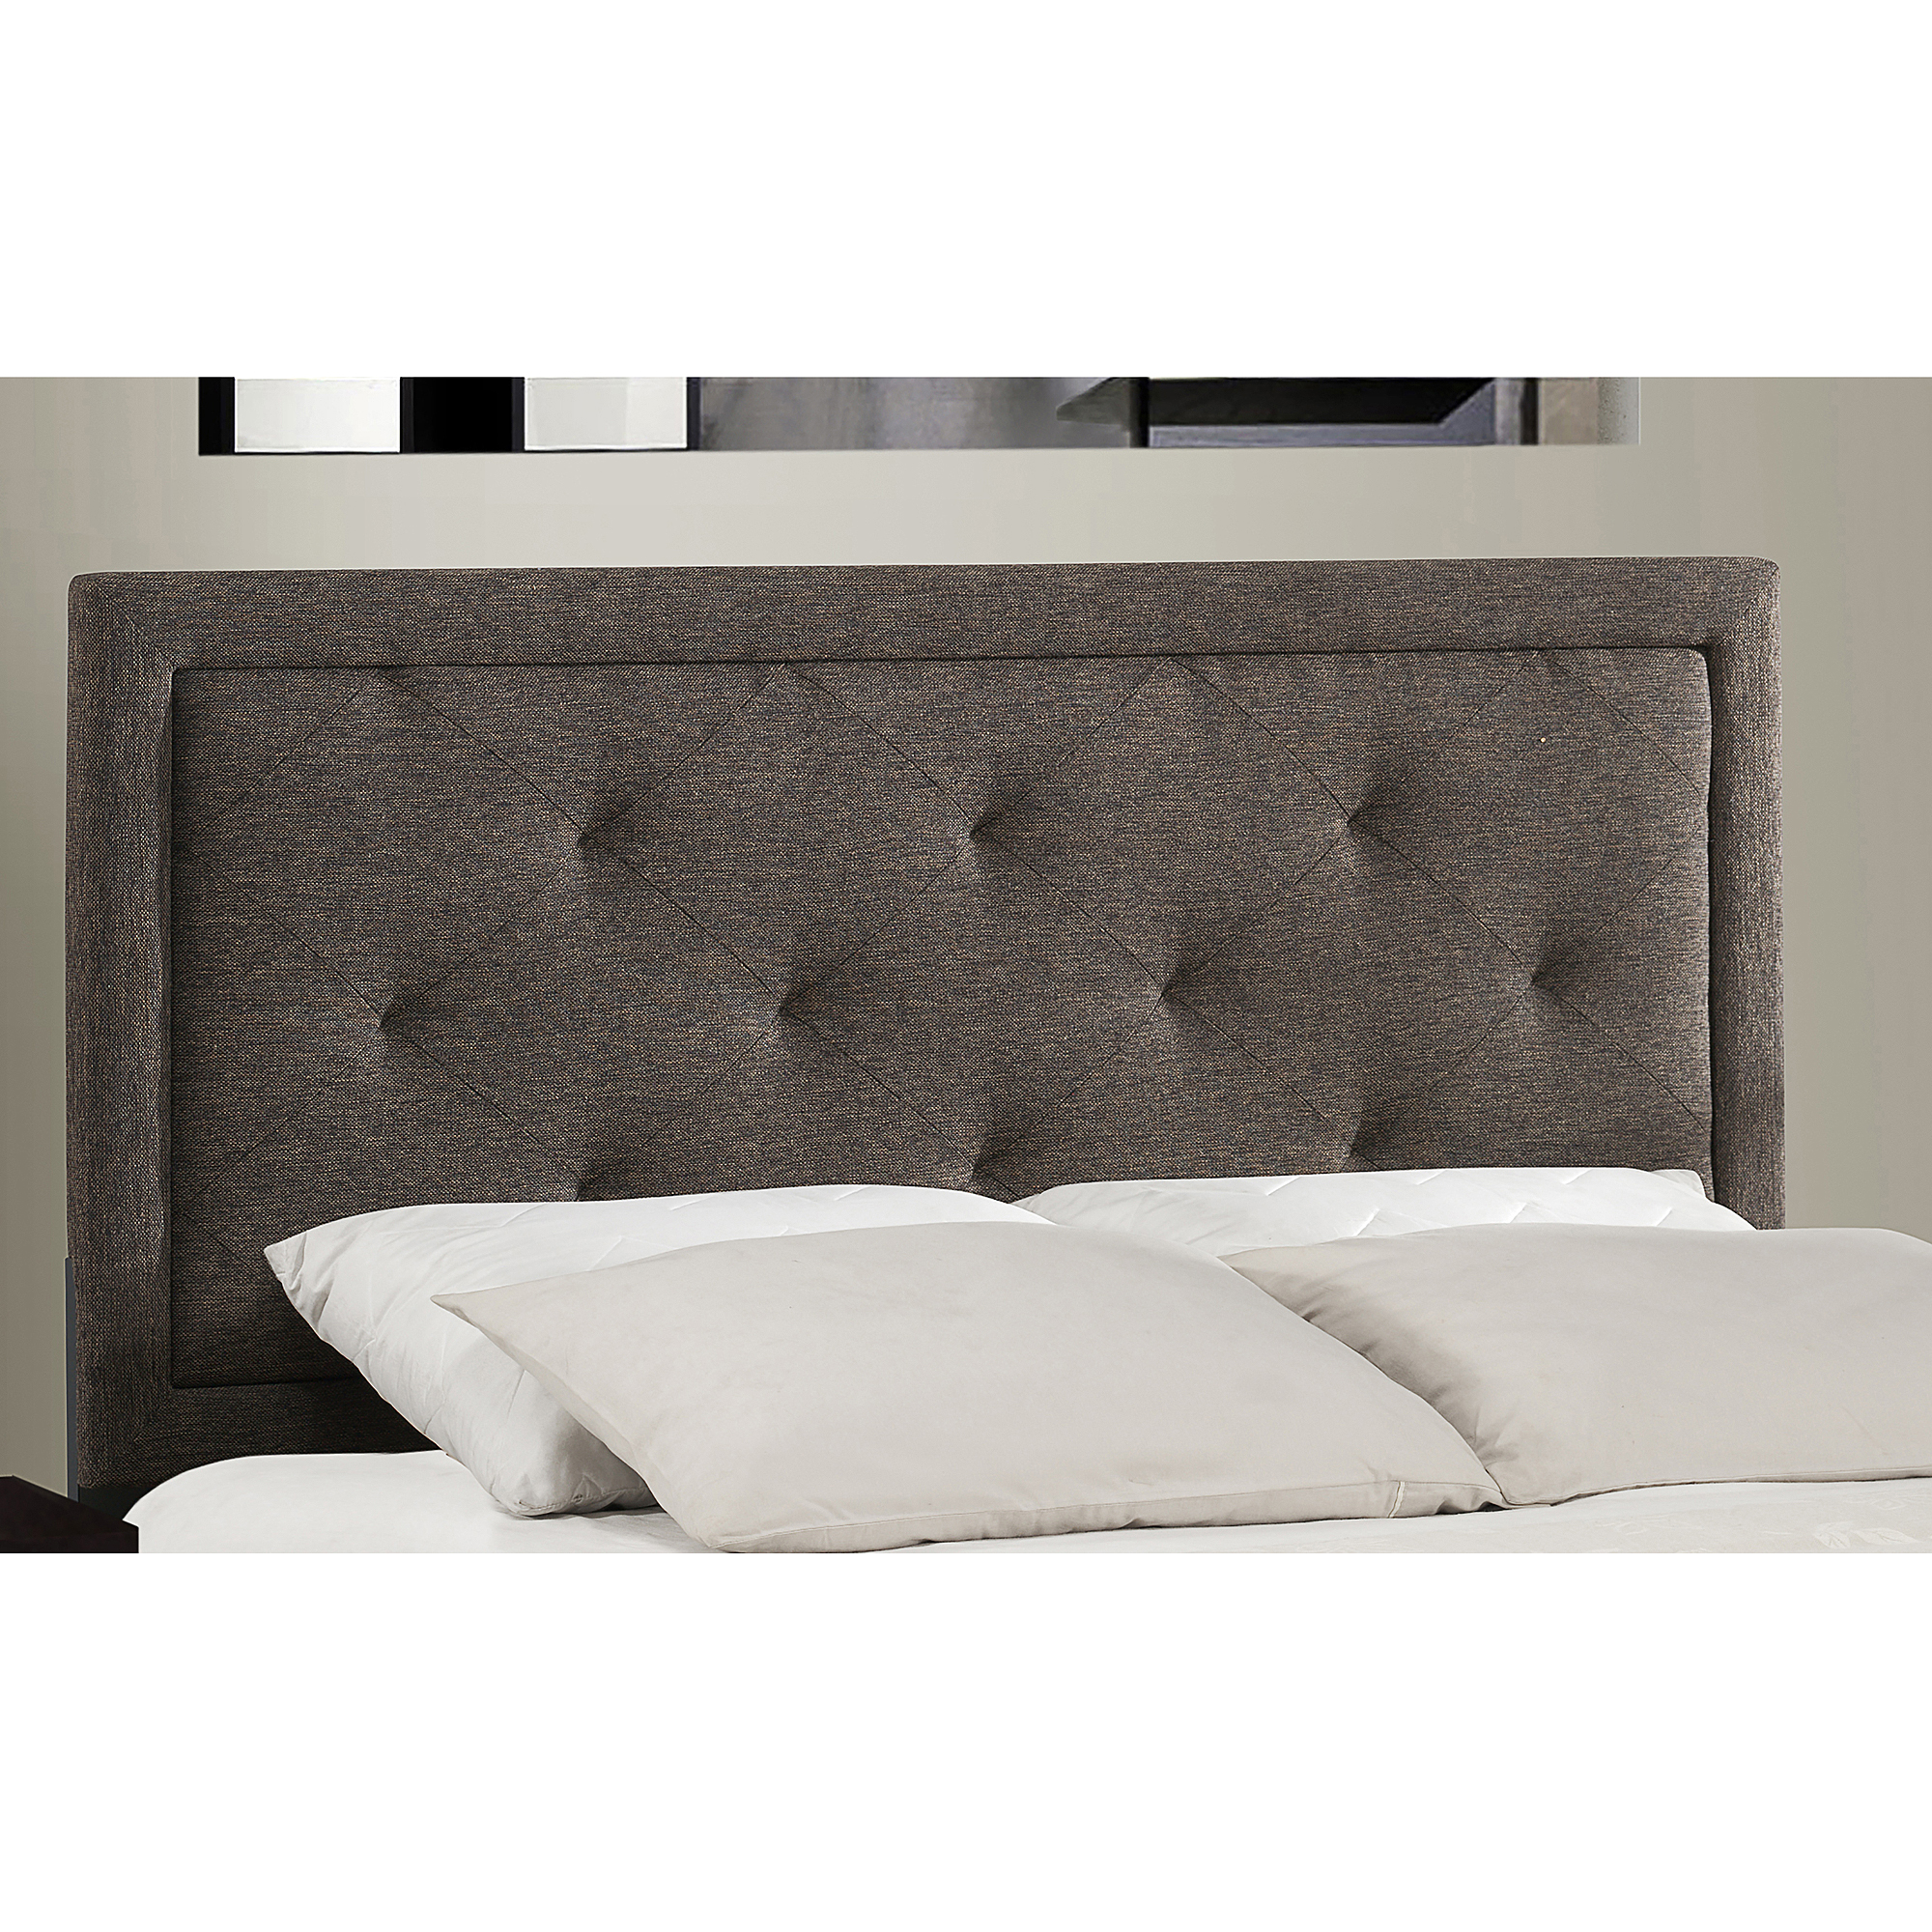 Hillsdale Furniture Becker Upholstered Headboard, Black/Brown